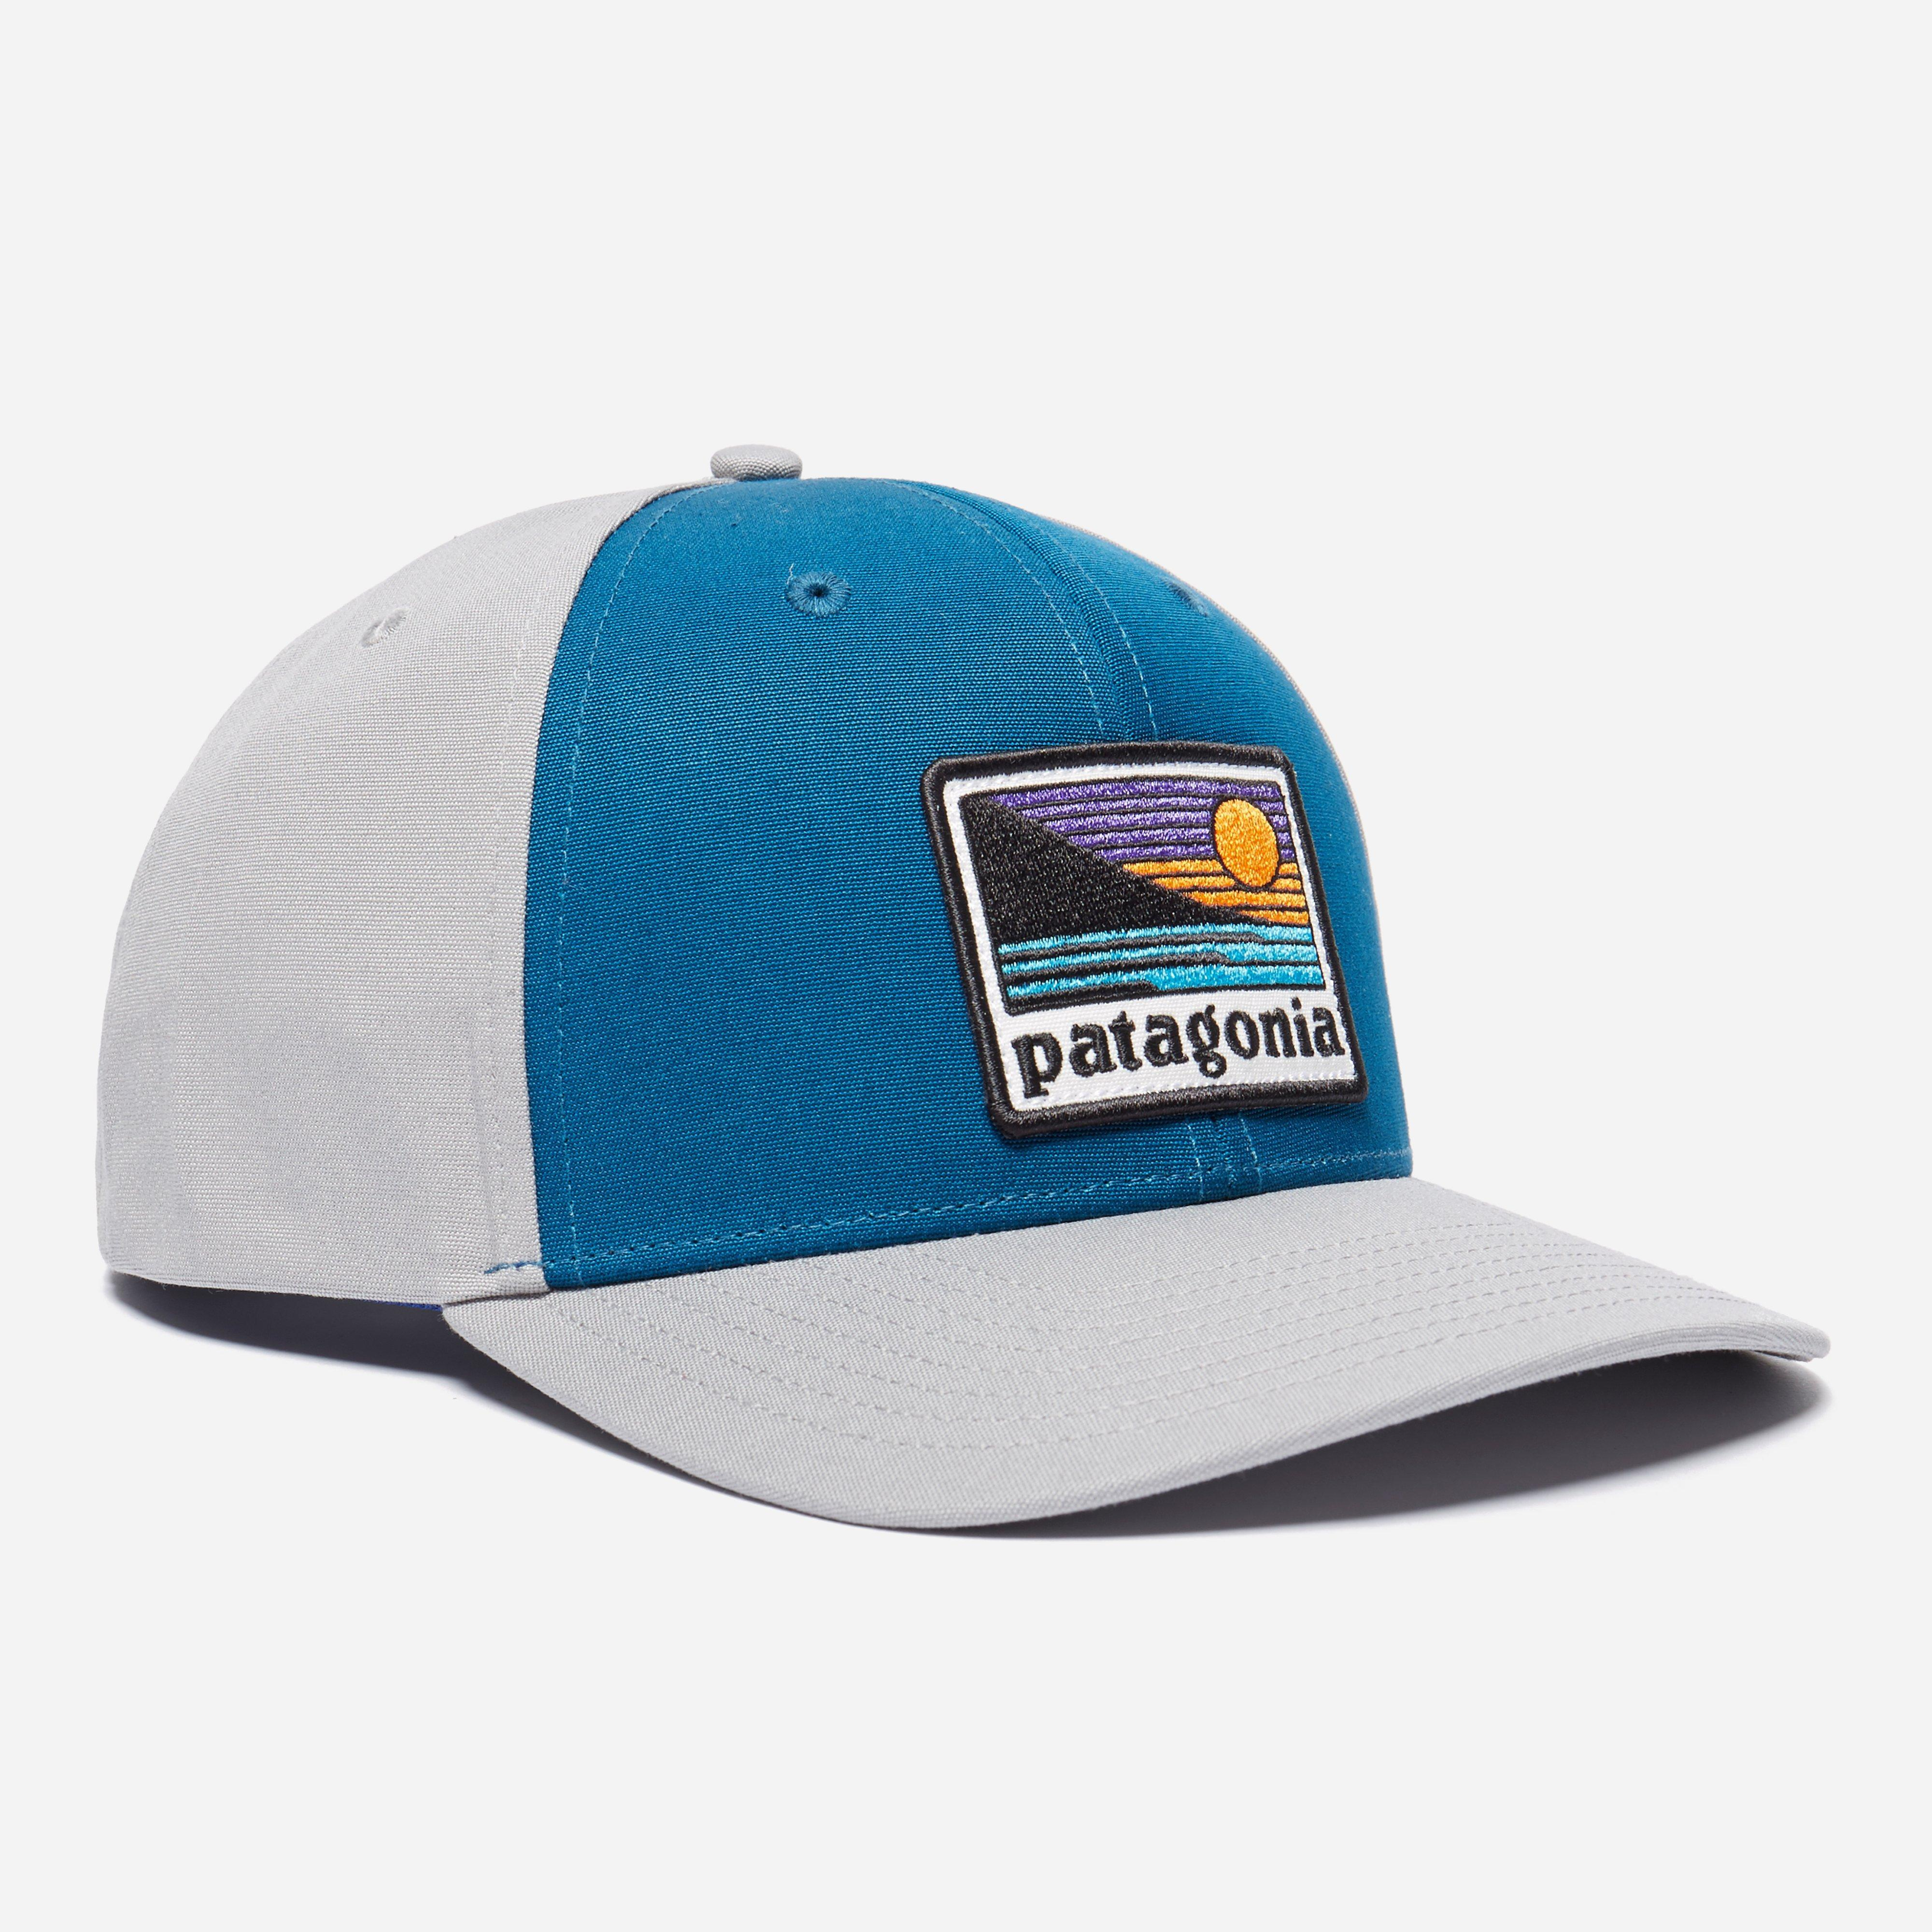 Patagonia Up   Out Roger That Hat in Blue for Men - Lyst 637fb016752